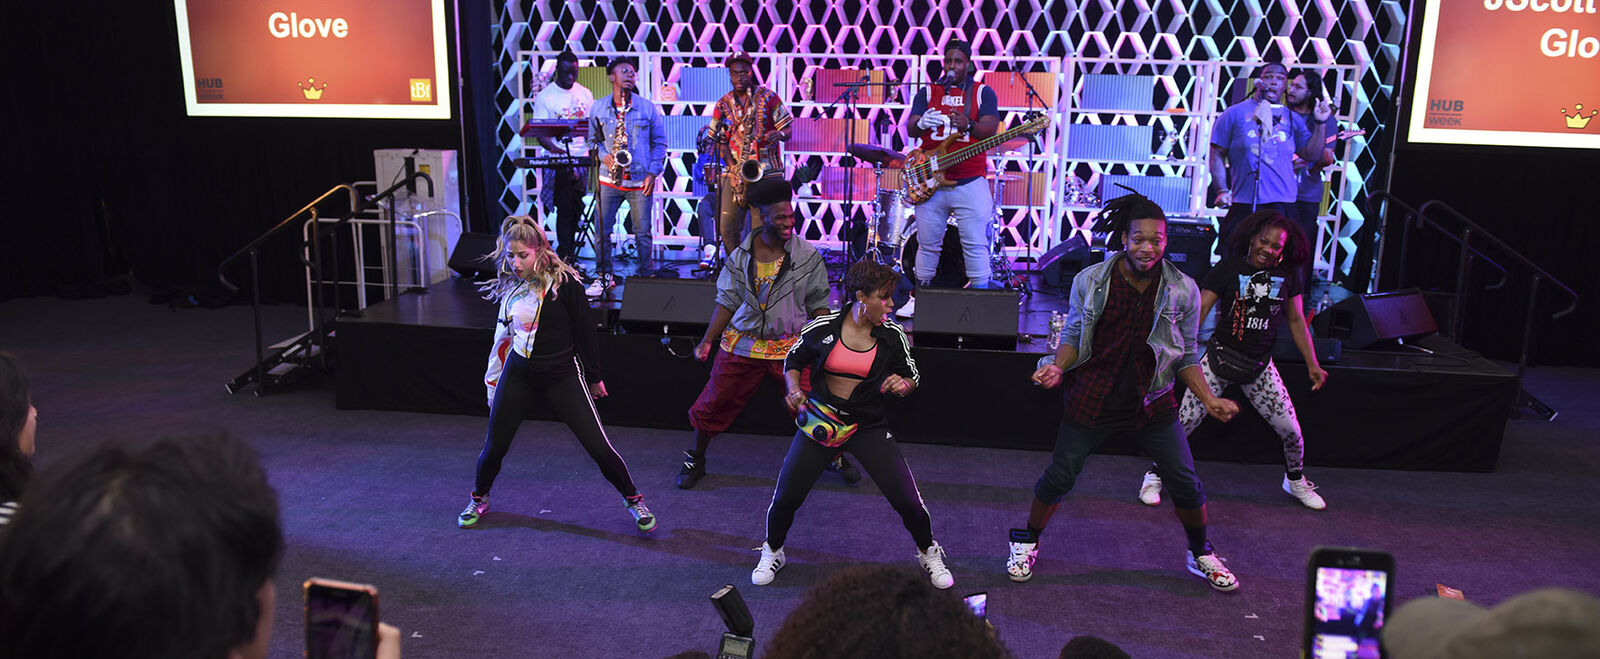 A group of young people dance on stage.